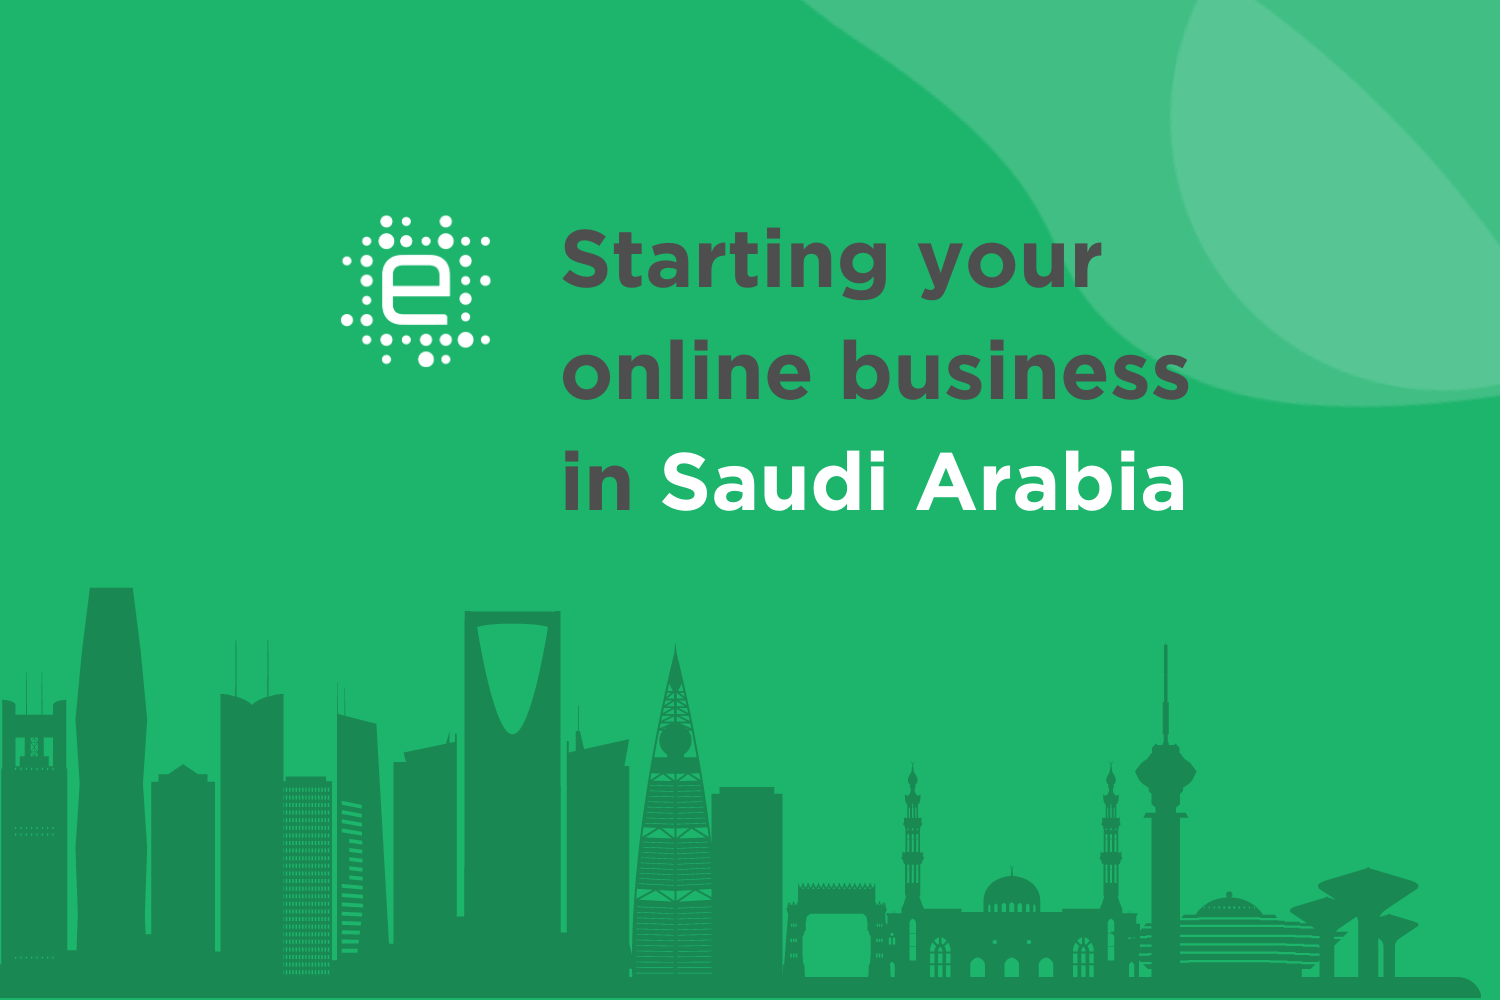 Starting Your Online Business in Saudi Arabia